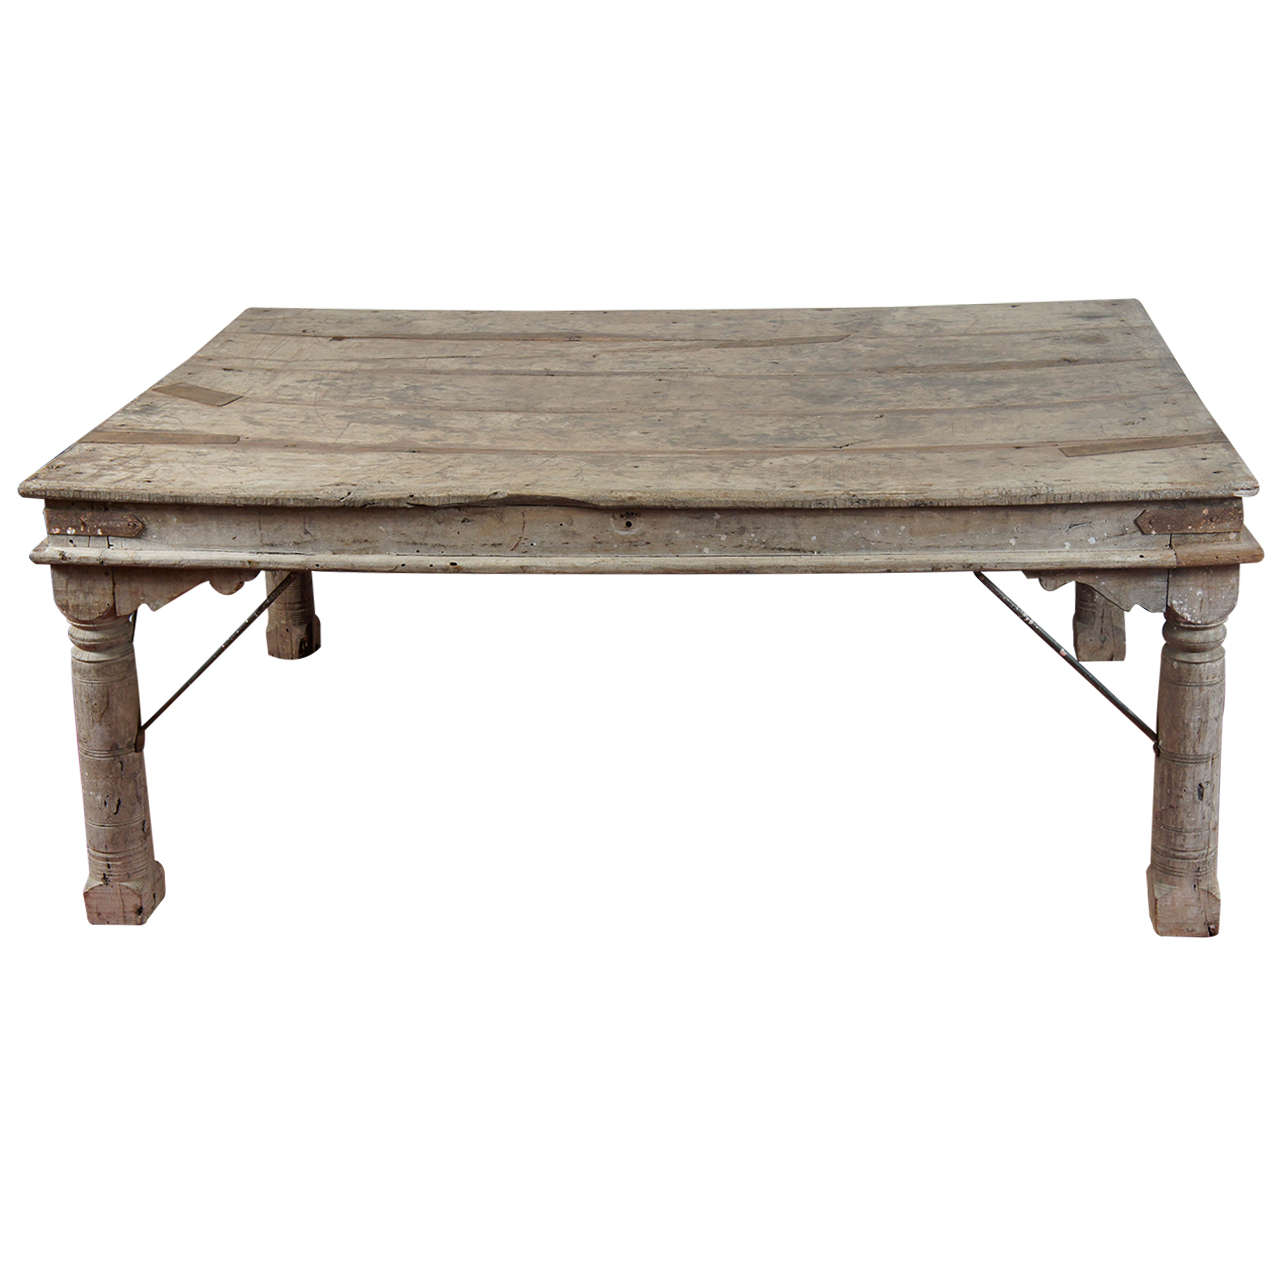 Indian plank teak dining table at 1stdibs - India dining table ...